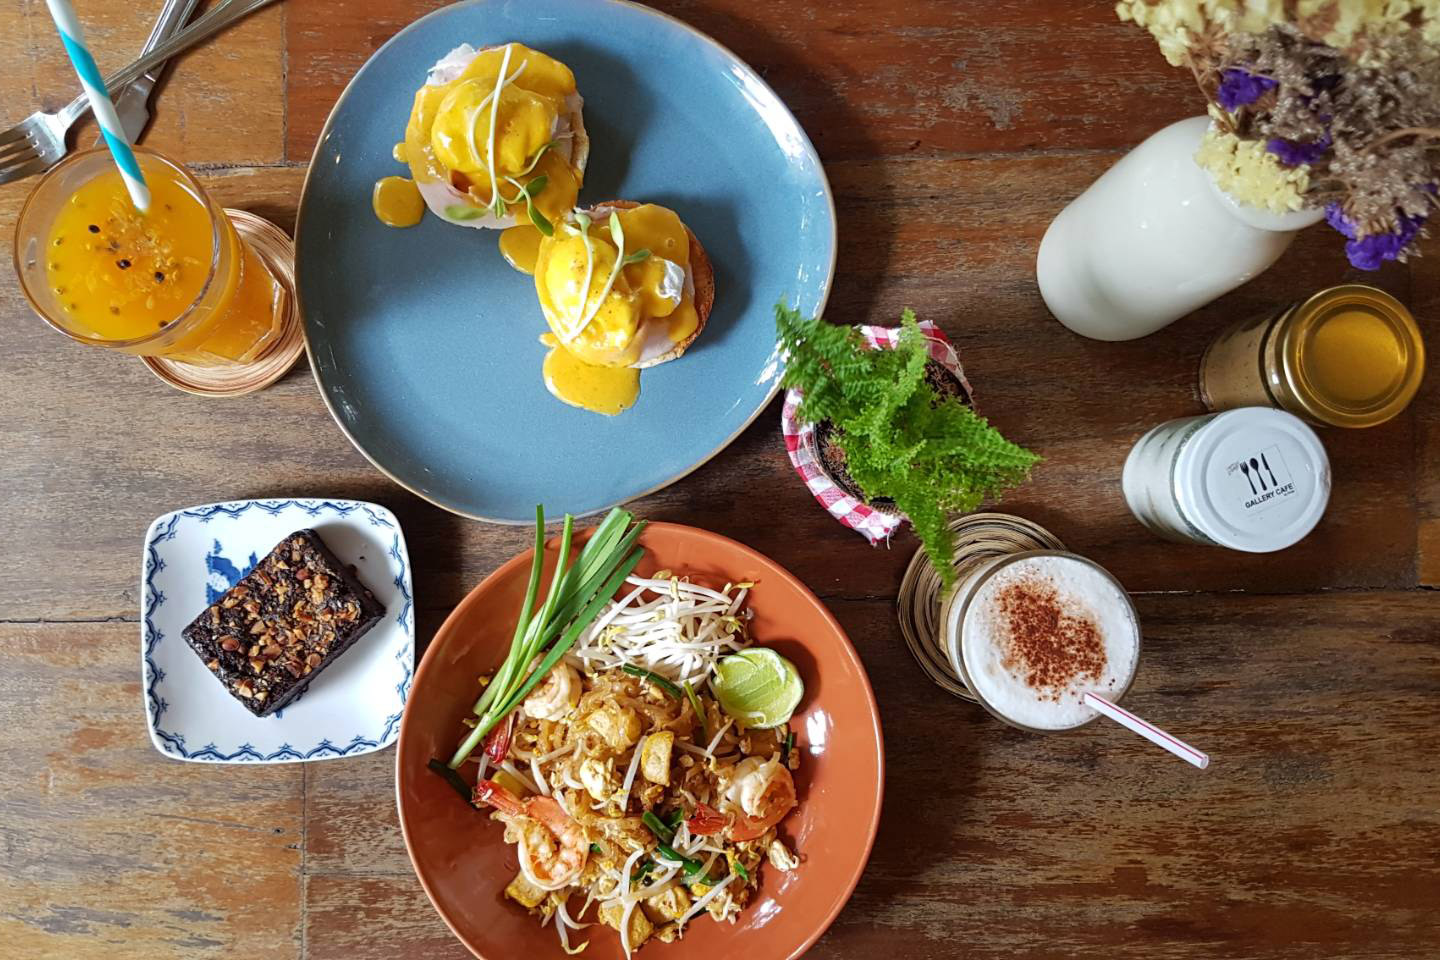 More Healthy Cafes in Rawai & Chalong